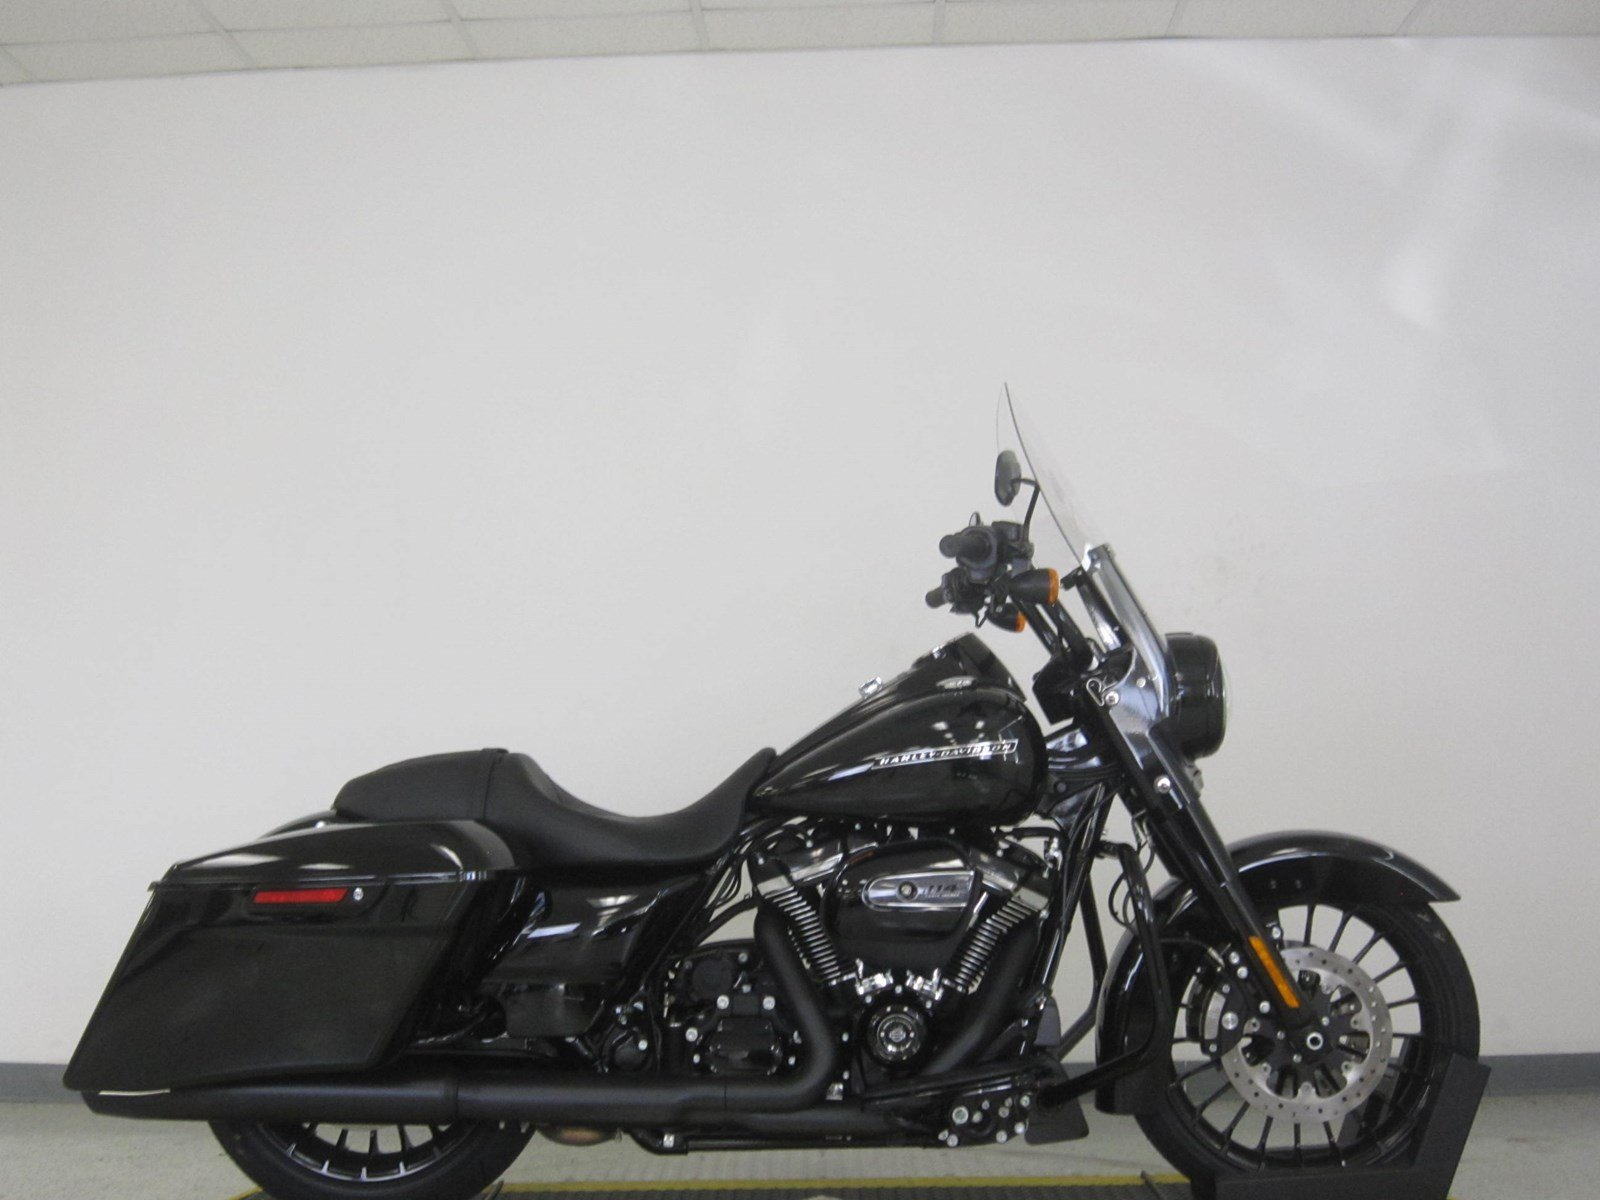 Pre-Owned 2019 Harley-Davidson Road King Special FLHRXS